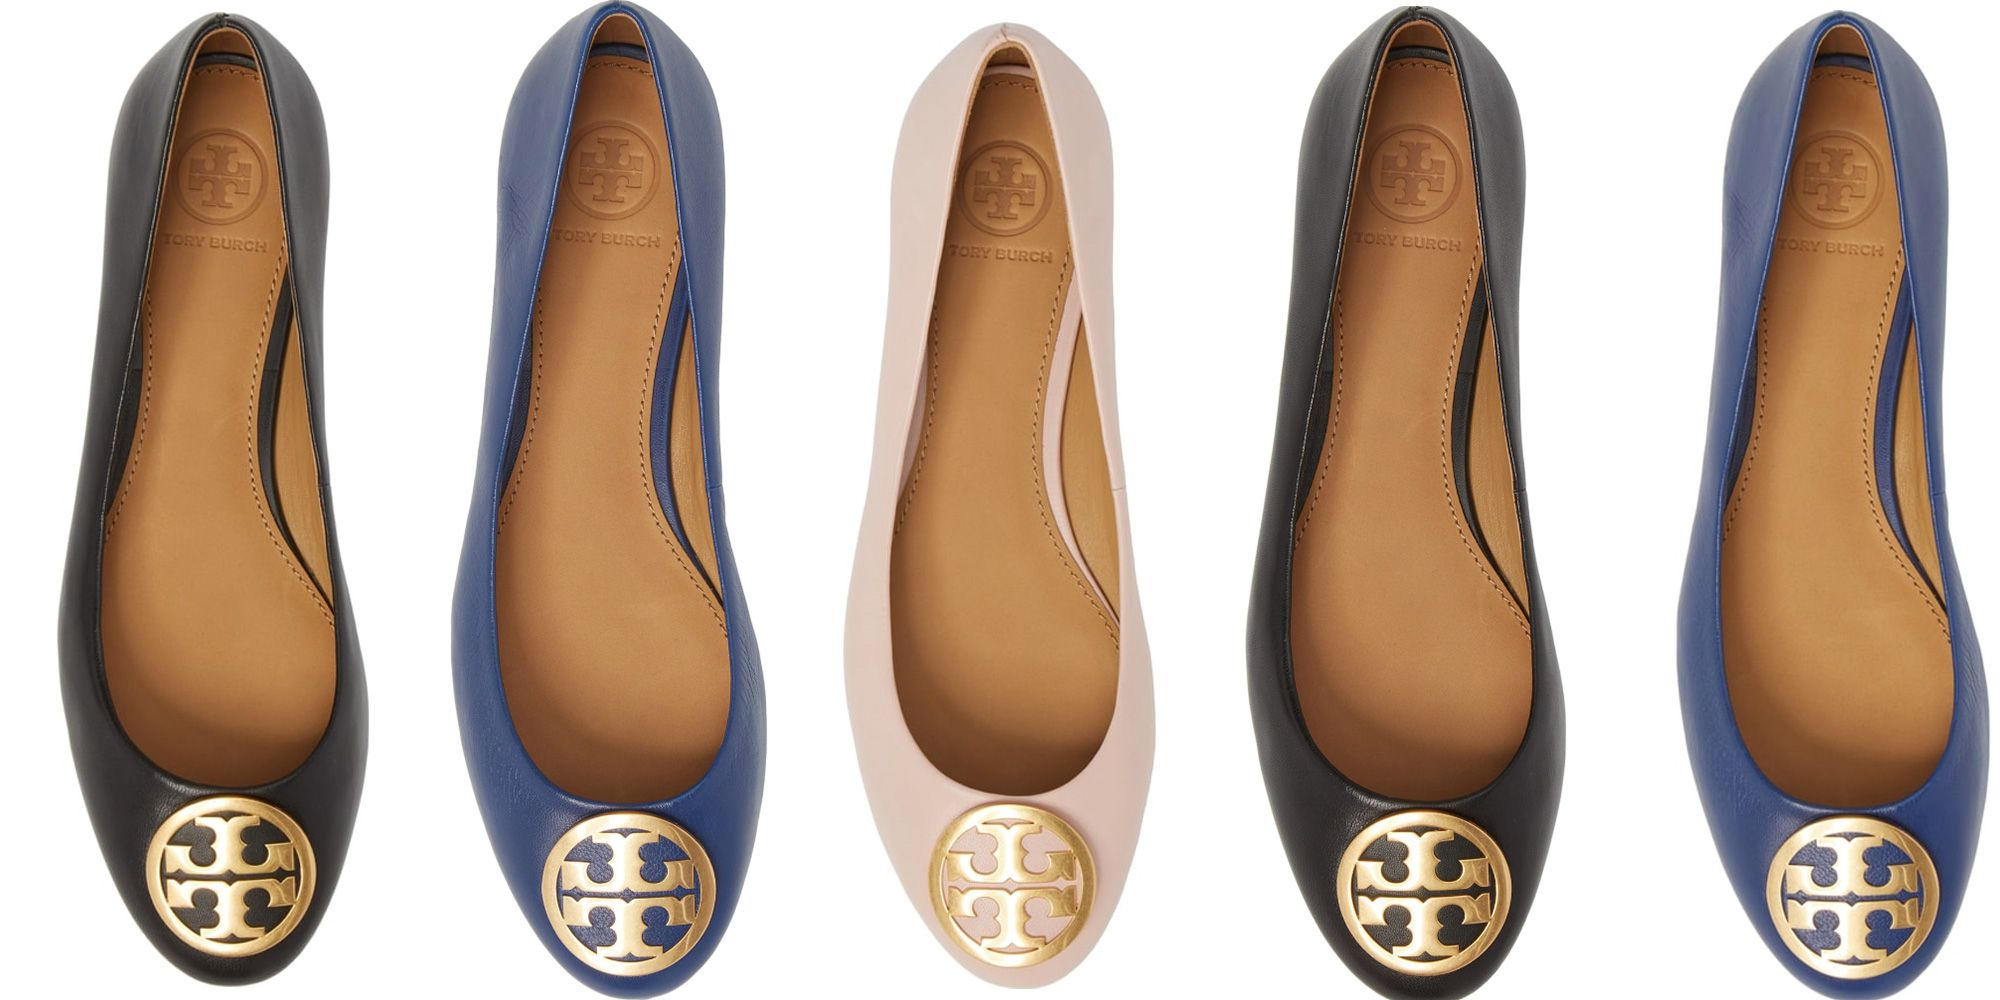 044e4a0c4e8 Can You Believe ! These Classic Tory Burch Flats Are  84 Off at the Nordstrom  Anniversary Sale